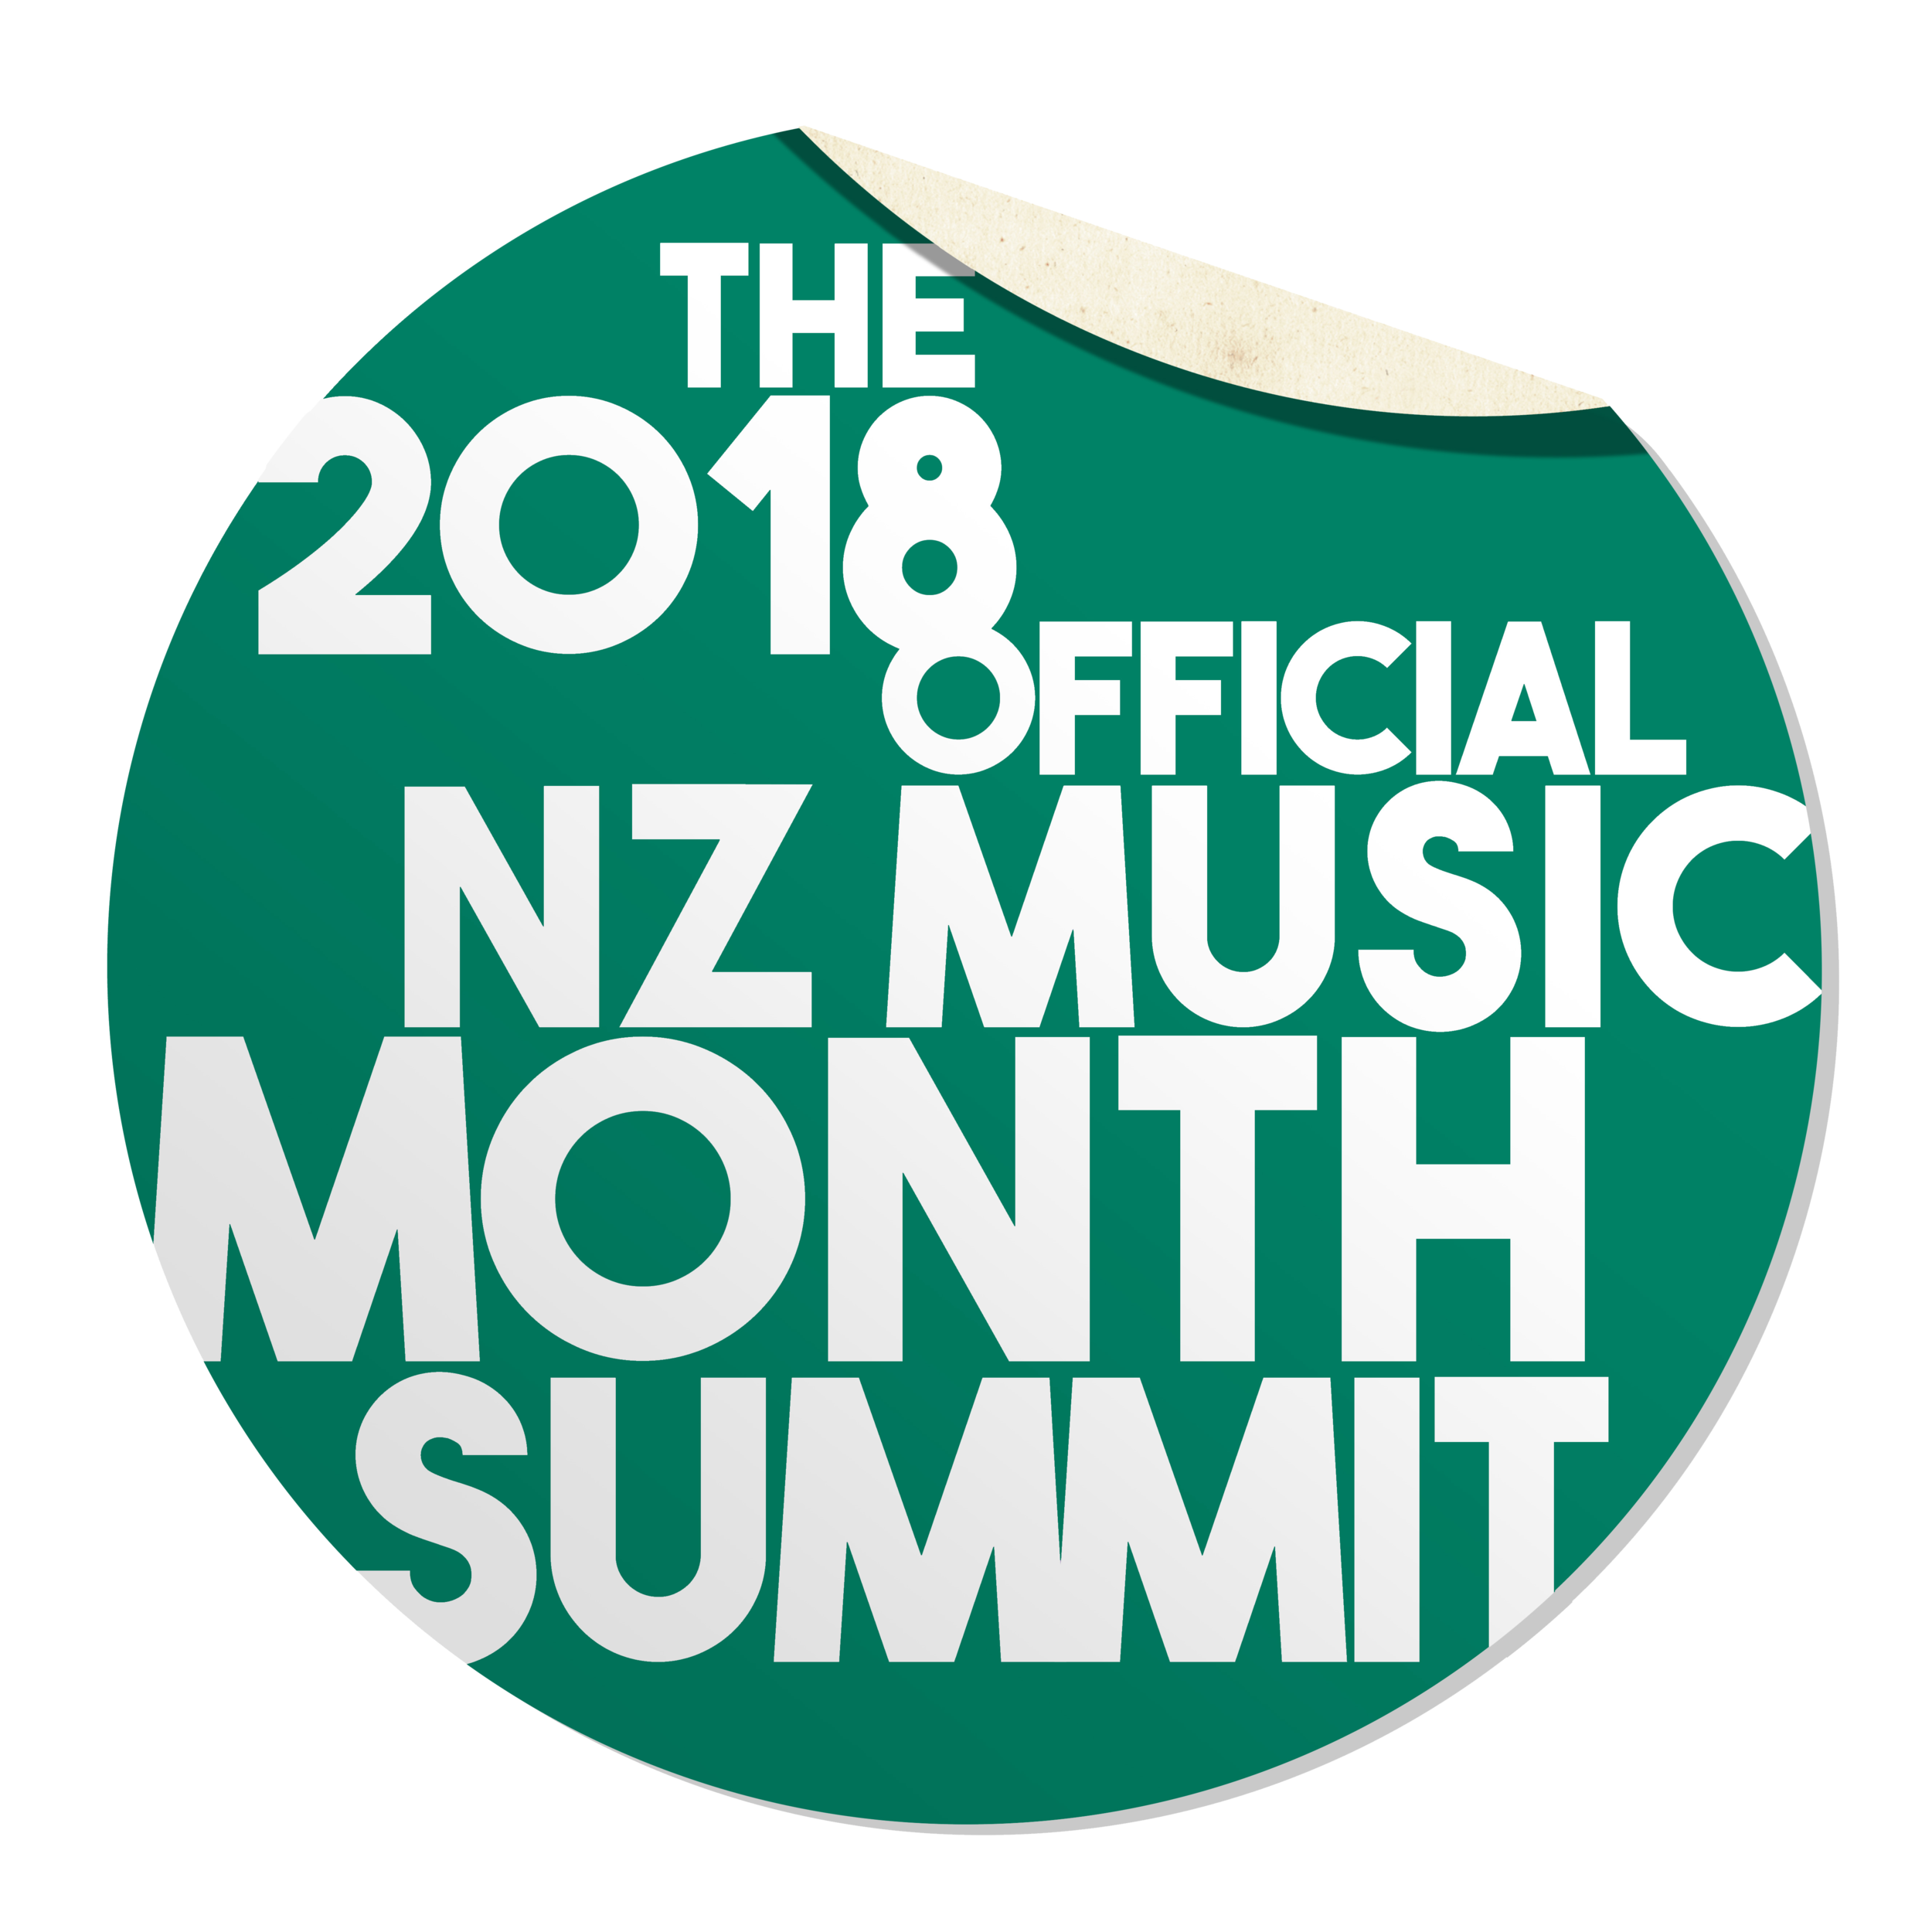 NZ MUSIC SUMMIT 2018 LOGO.png